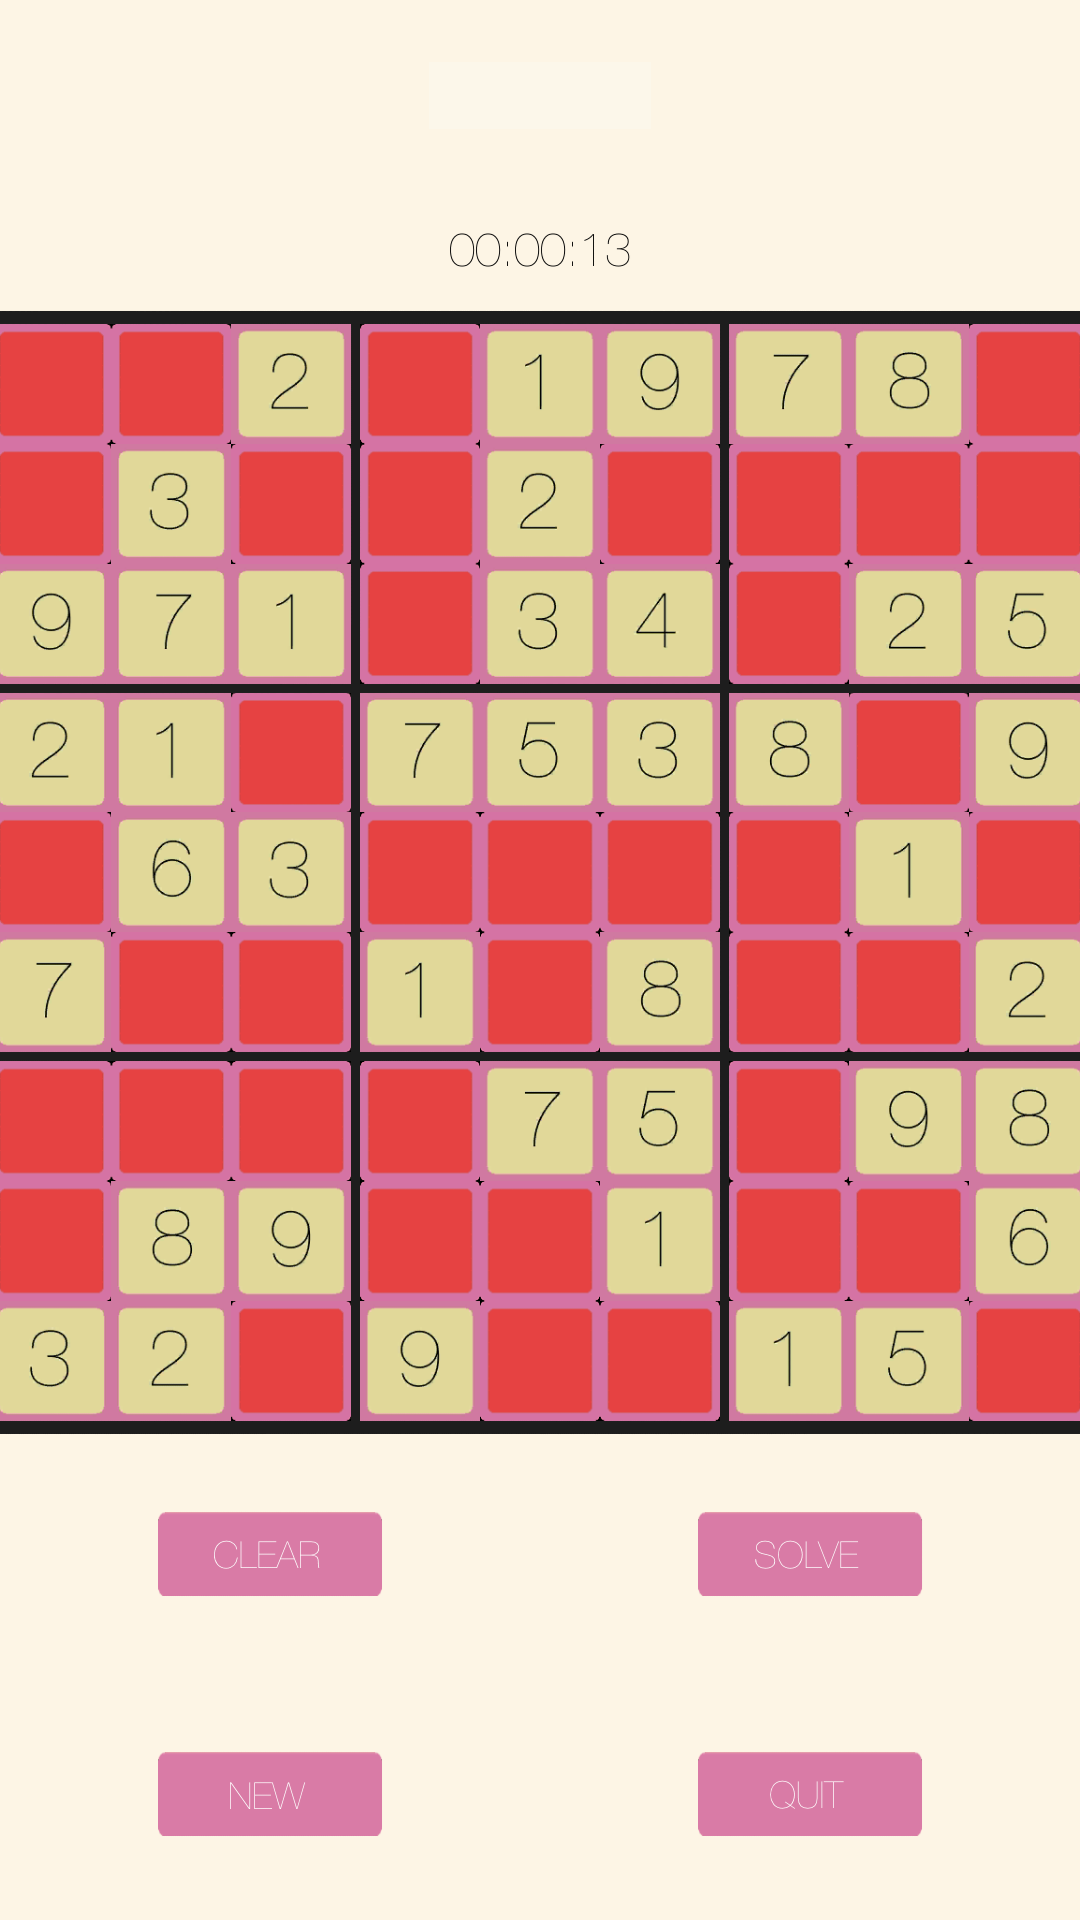 Sudoku Super Challenge - The Number Placement Puzzle